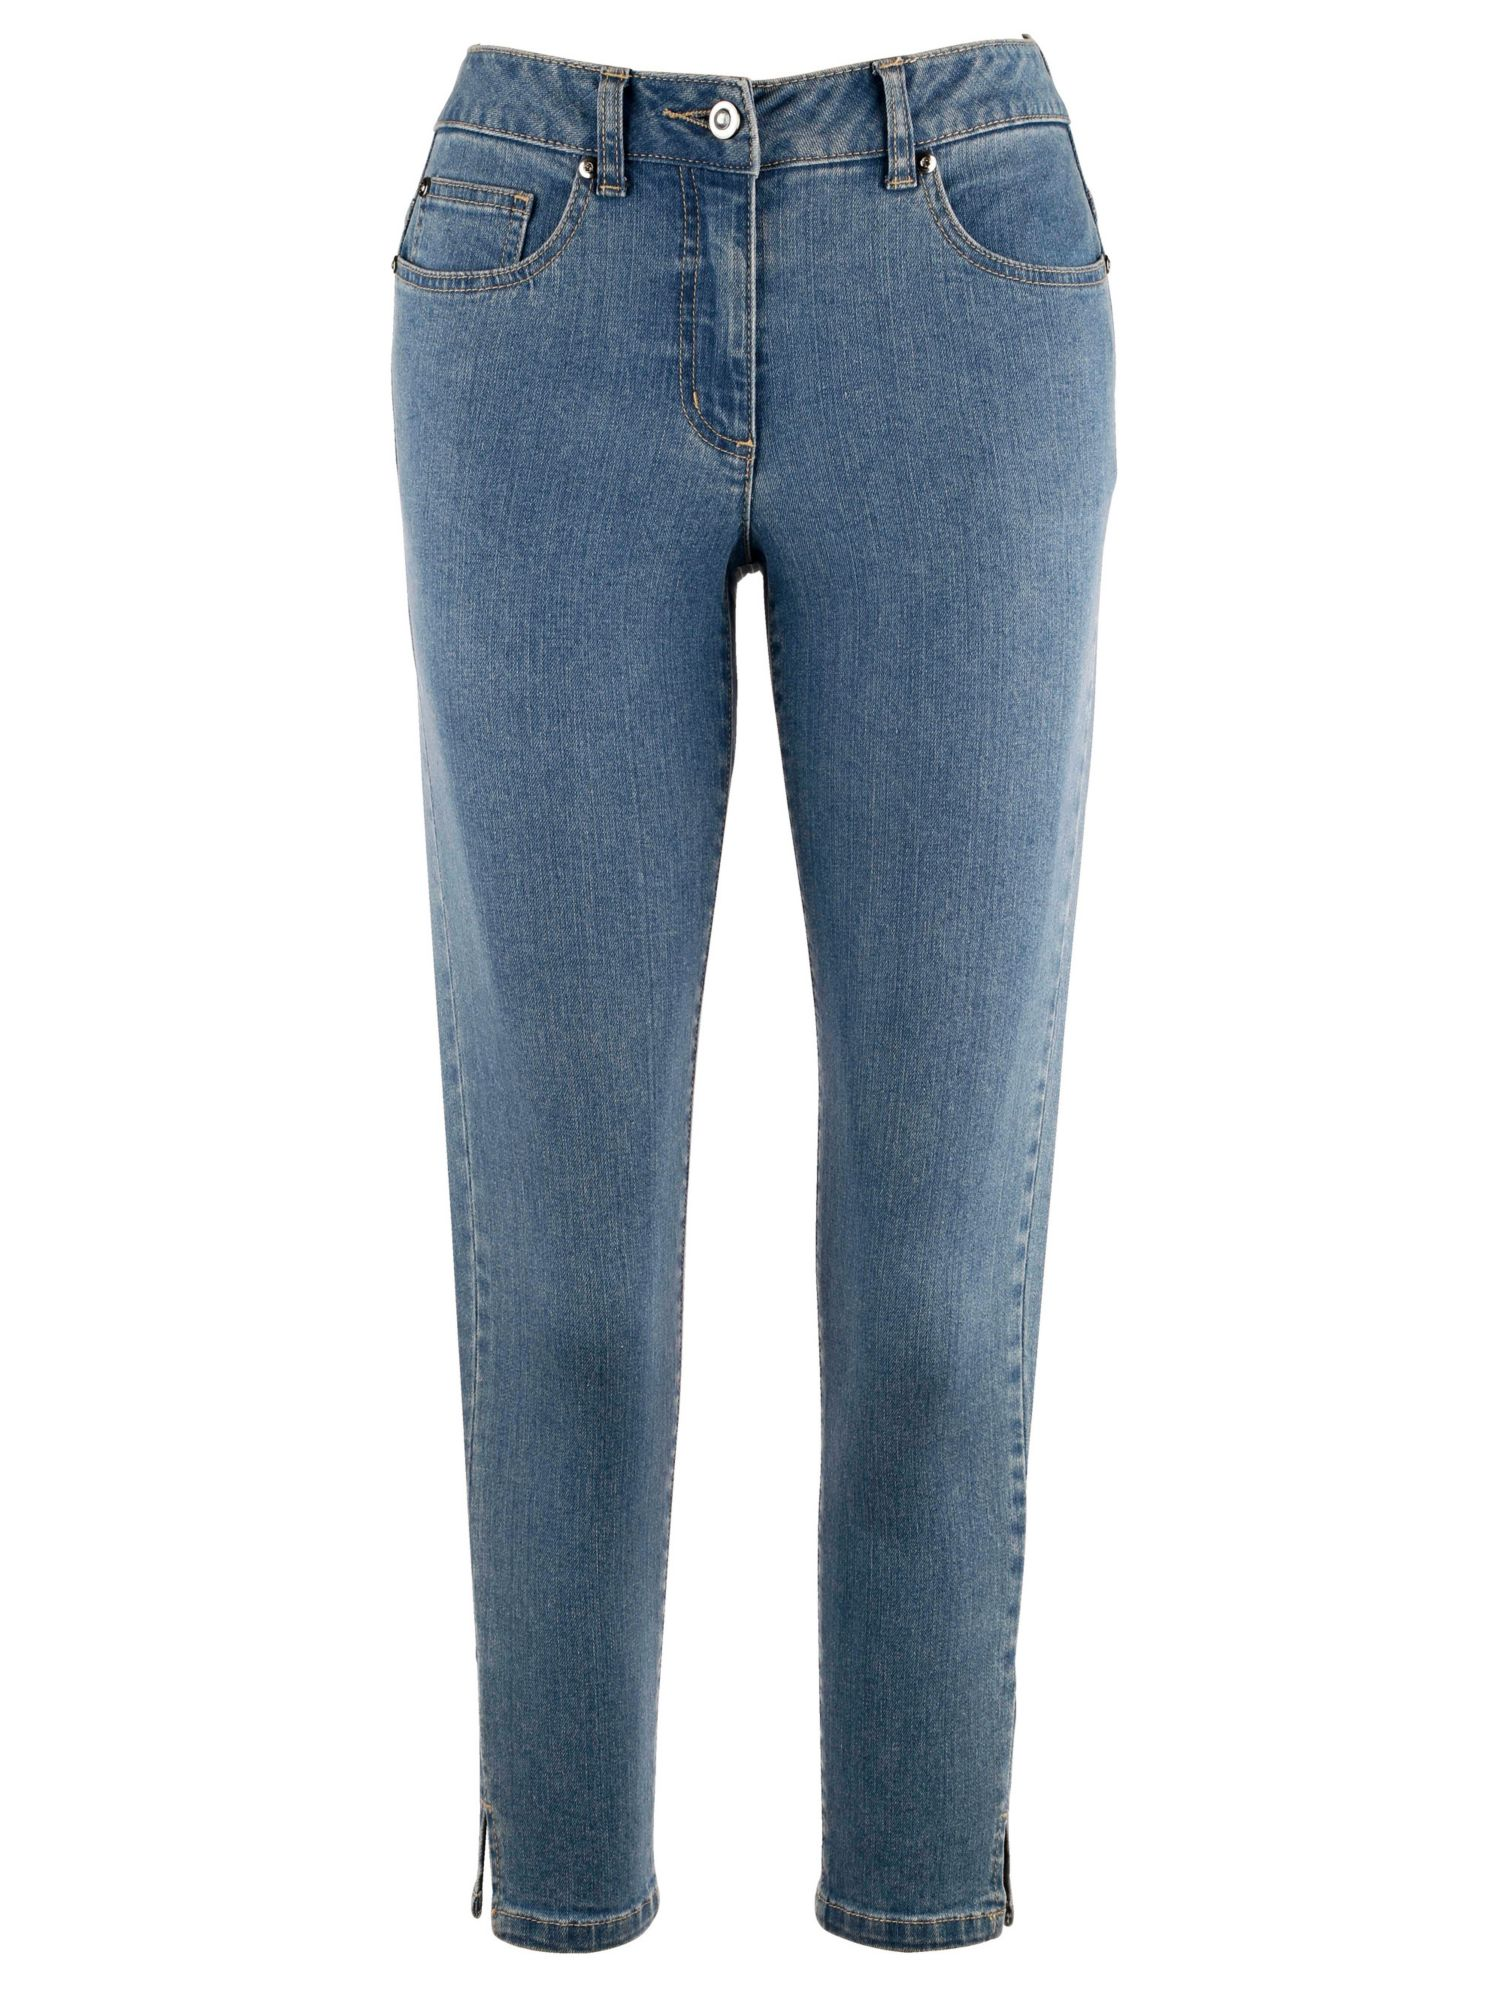 AMY VERMONT Amy Vermont 7/8 Jeans in 5-Pocket-Form